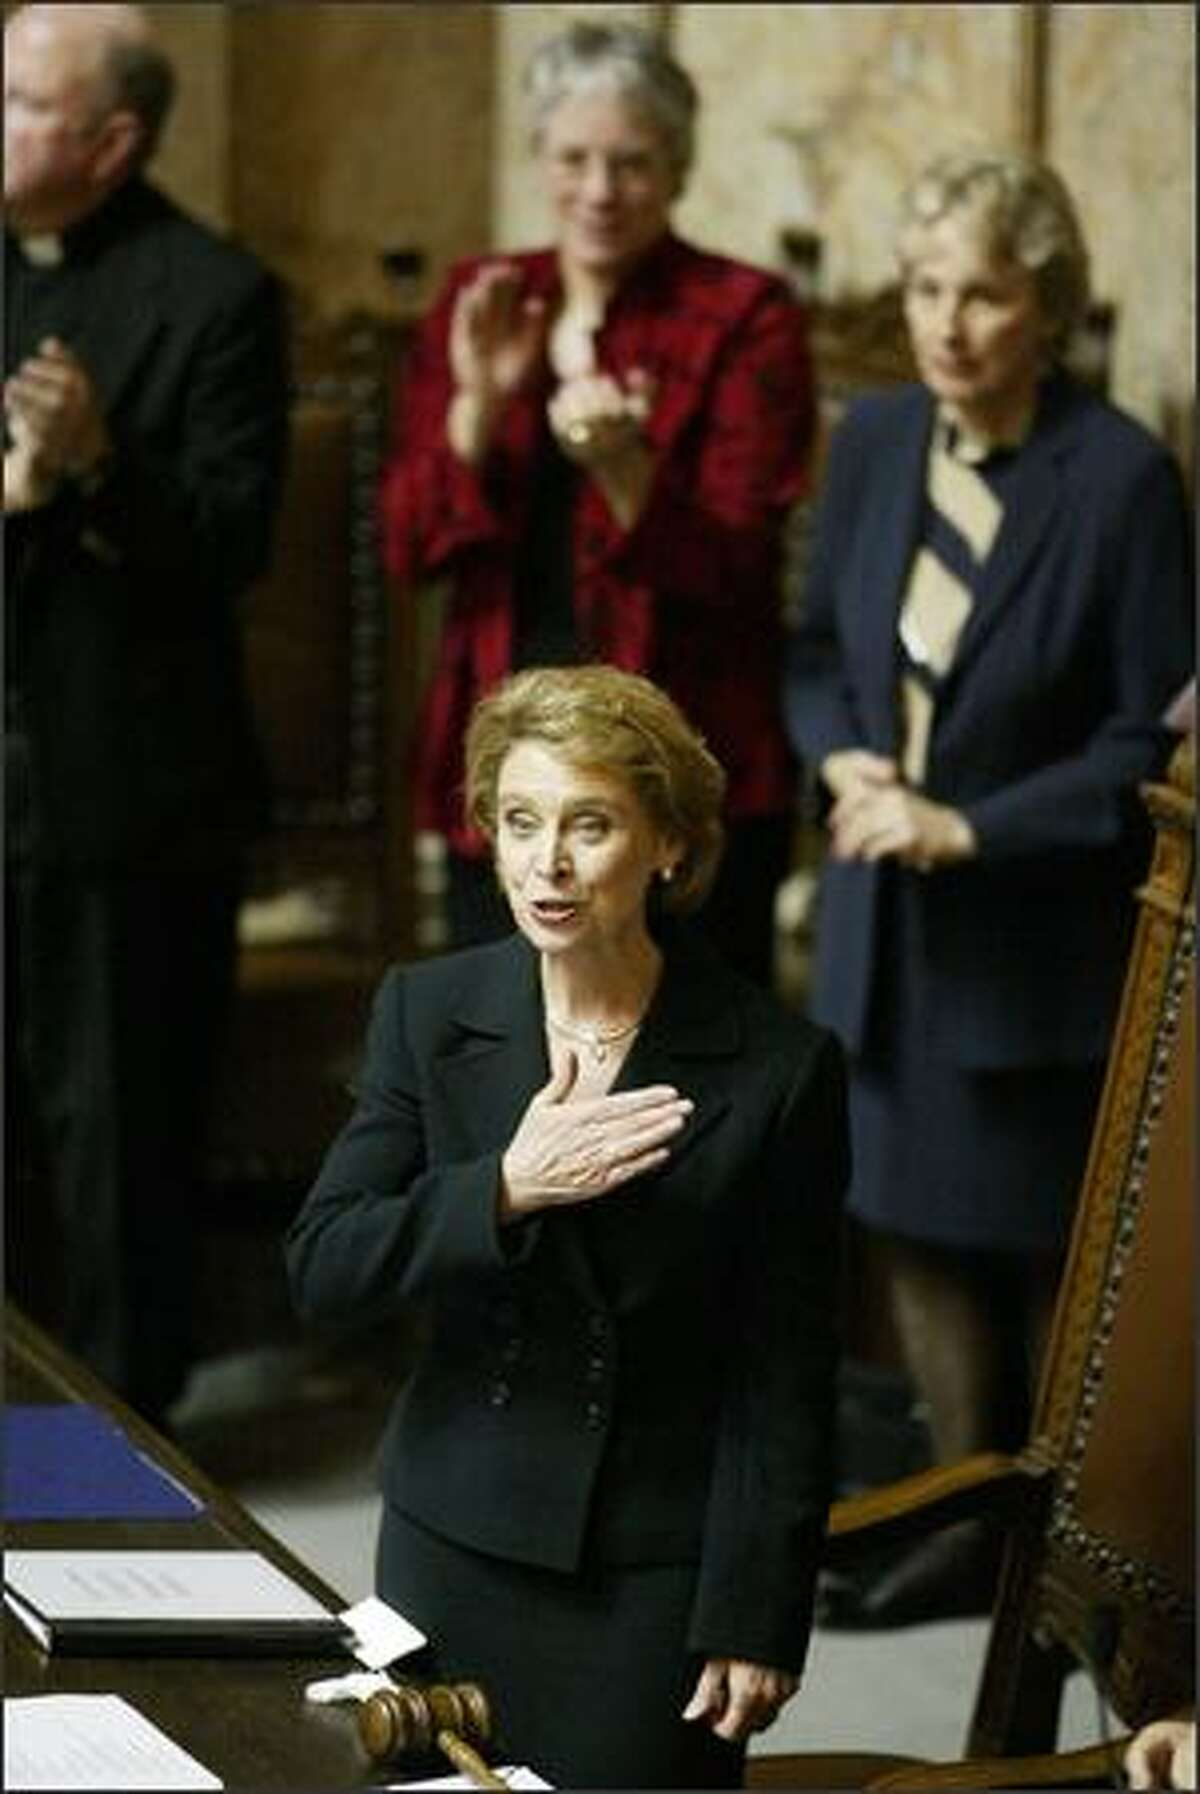 With a hand placed over her heart, Christine Gregoire acknowledges her family sitting in the gallery after she was sworn in as governor in the Legislature in Olympia yesterday. - See more photos